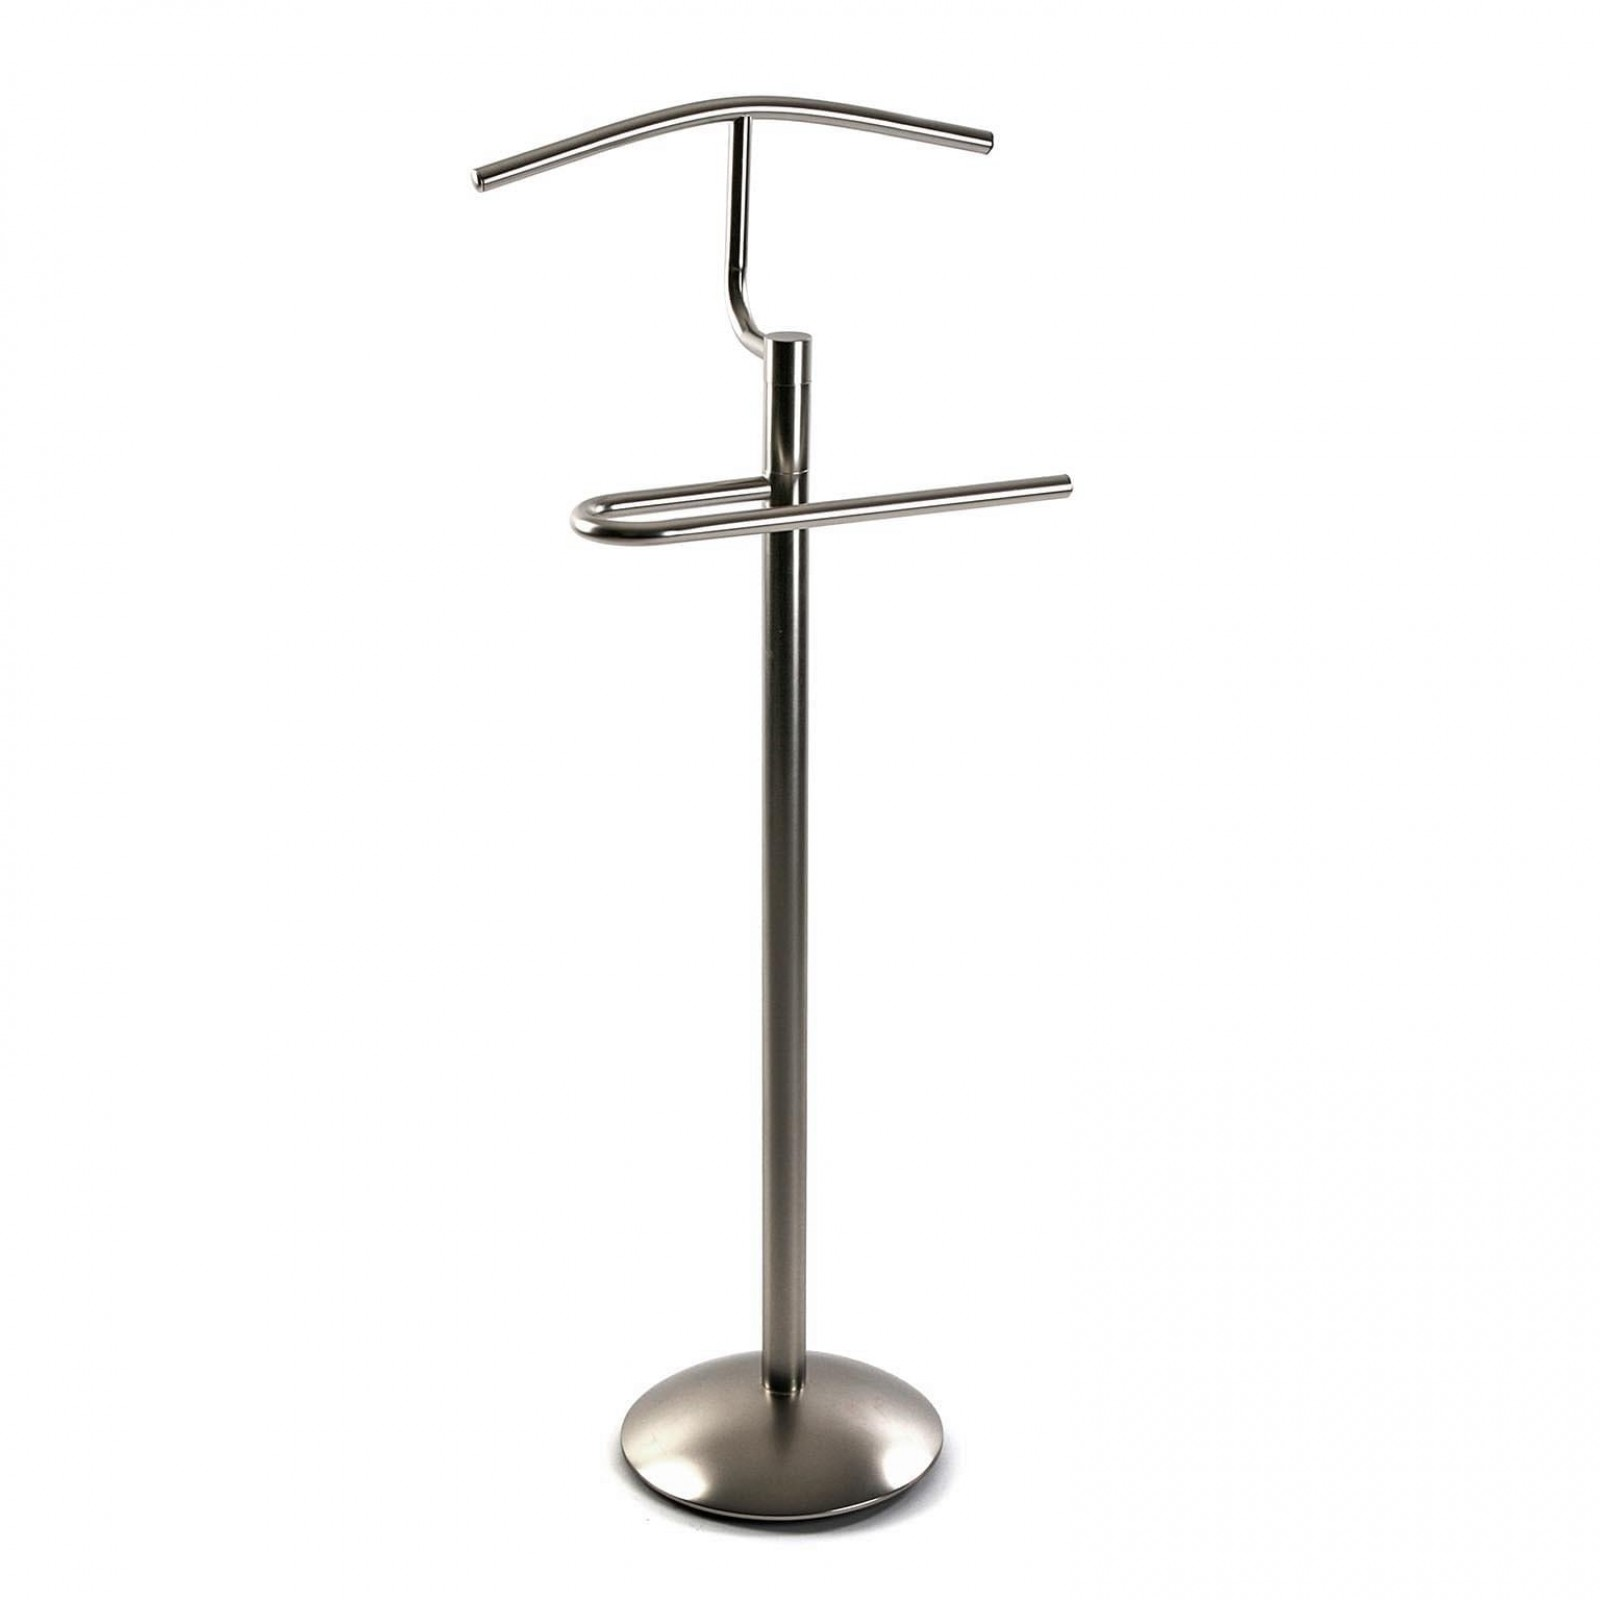 Oakley Clothes Stand (Silver) - Versa